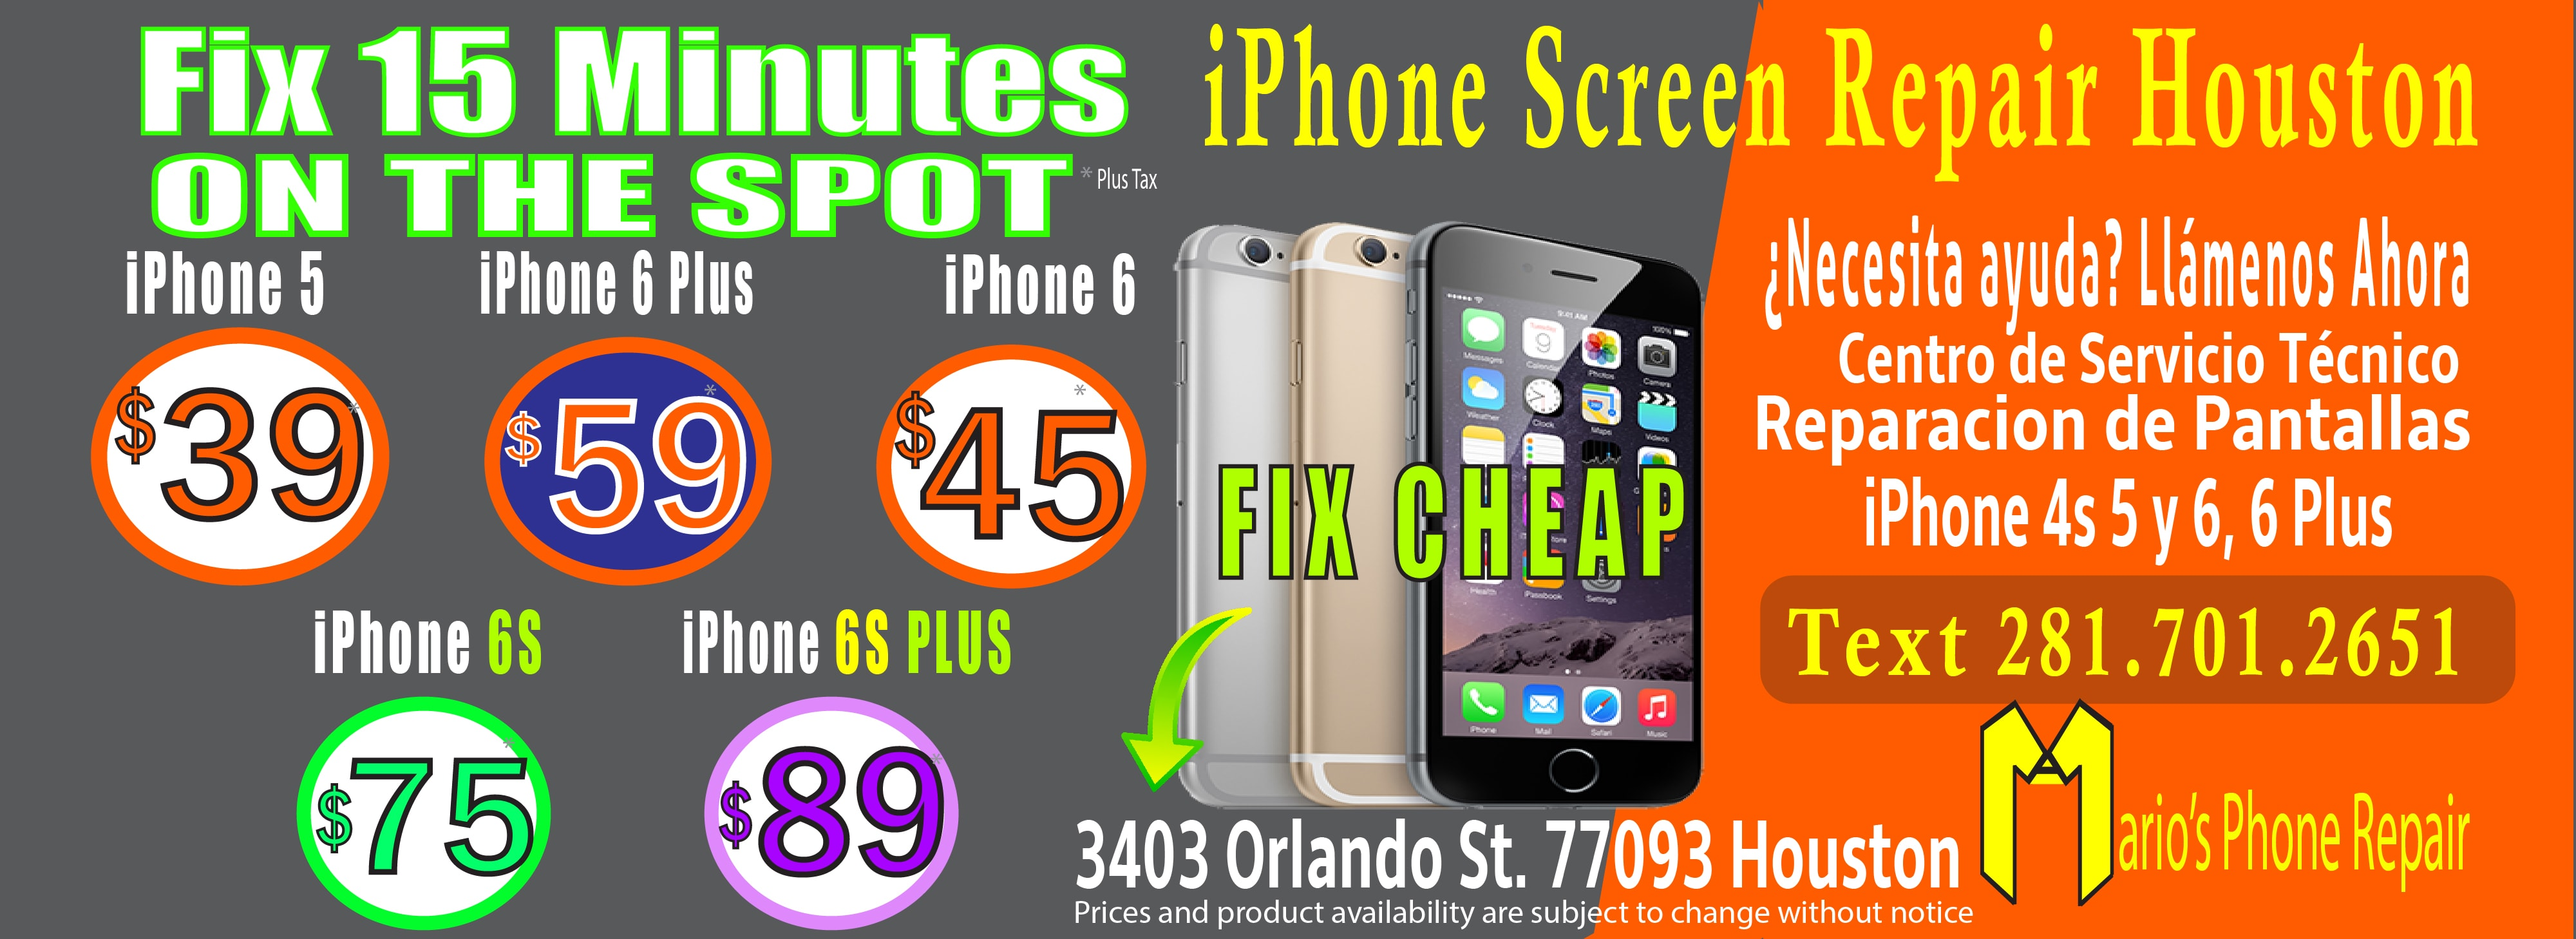 iphone-screen-repair-houston-TEXAS-min